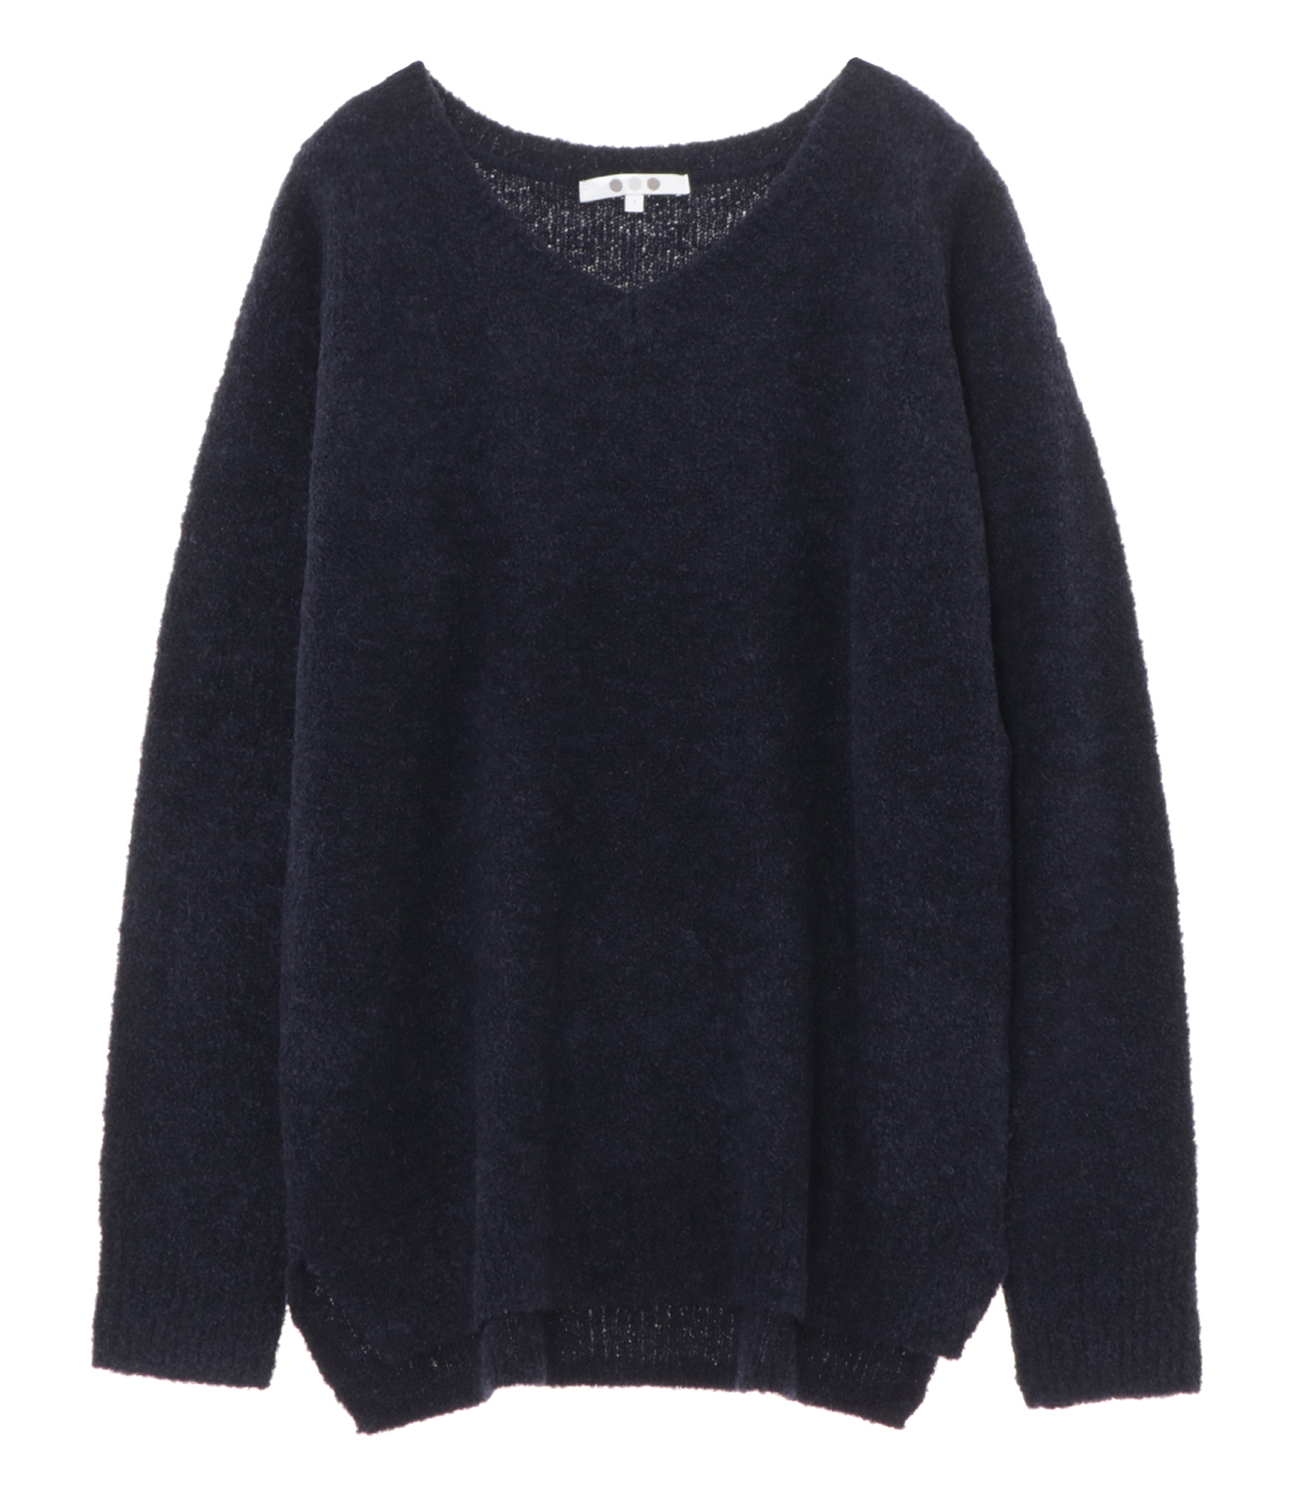 alpaca mixed boucle v neck pull 詳細画像 navy 1